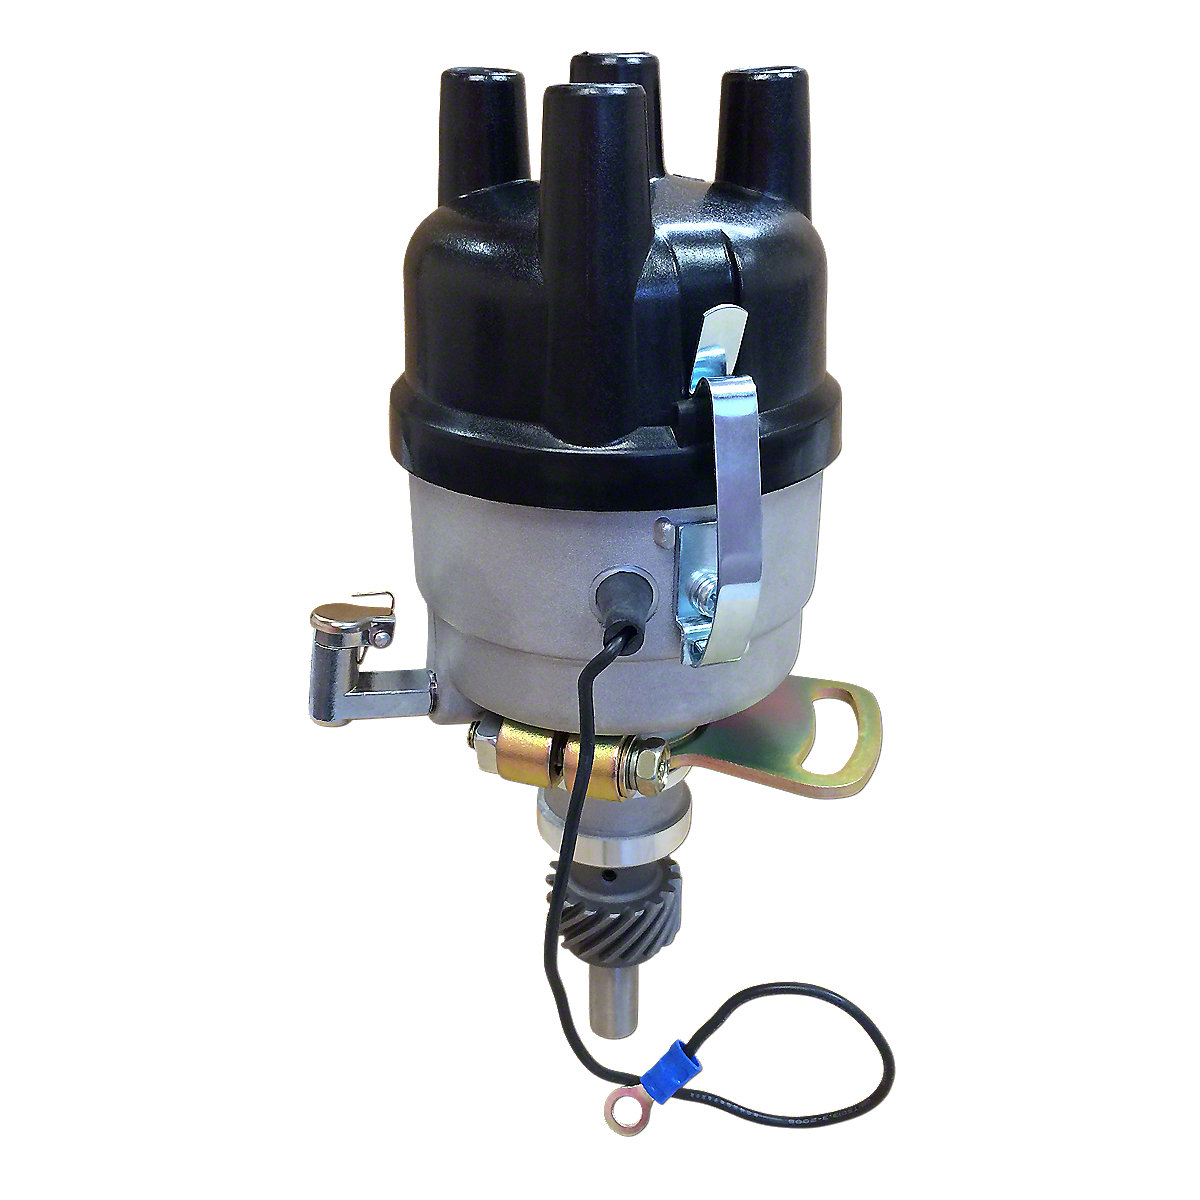 Ford Tractor Distributor Parts : Ford distributor assembly complete for